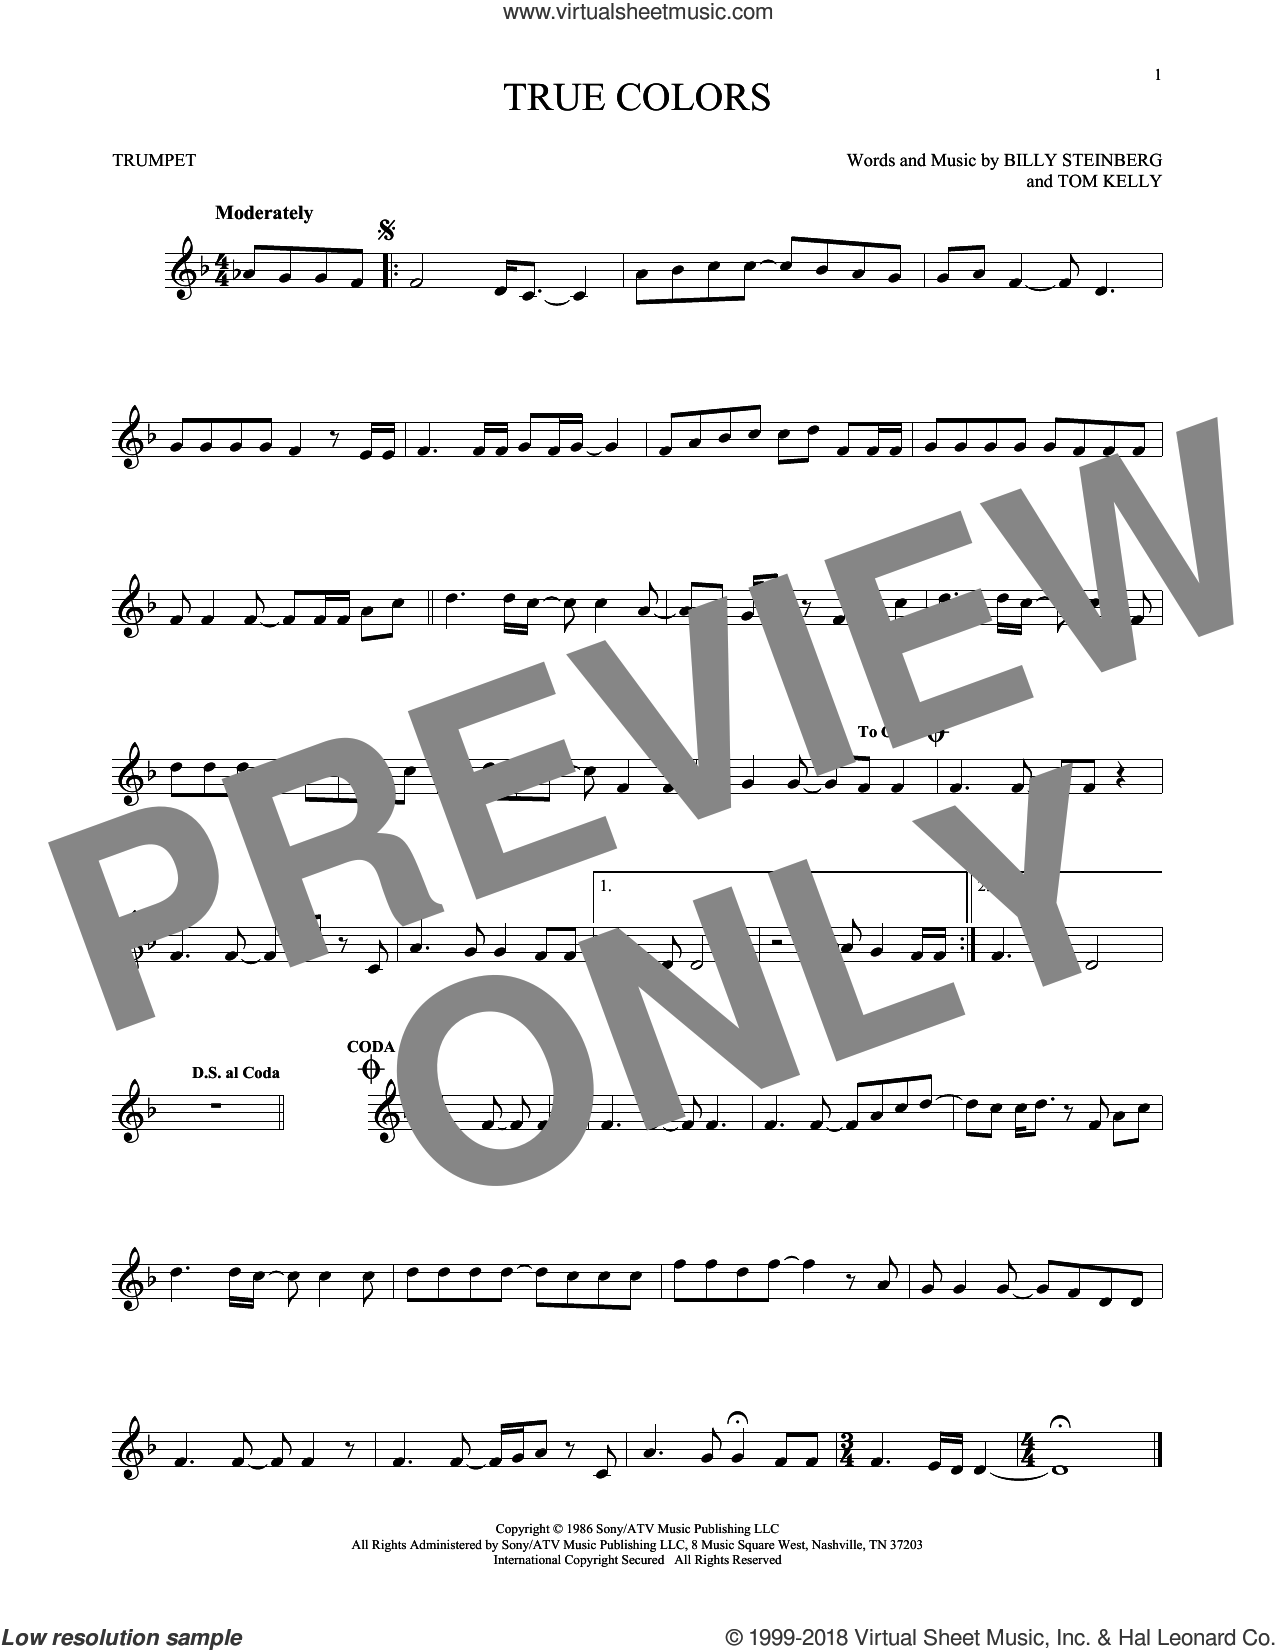 True Colors sheet music for trumpet solo by Cyndi Lauper, Billy Steinberg and Tom Kelly, intermediate skill level